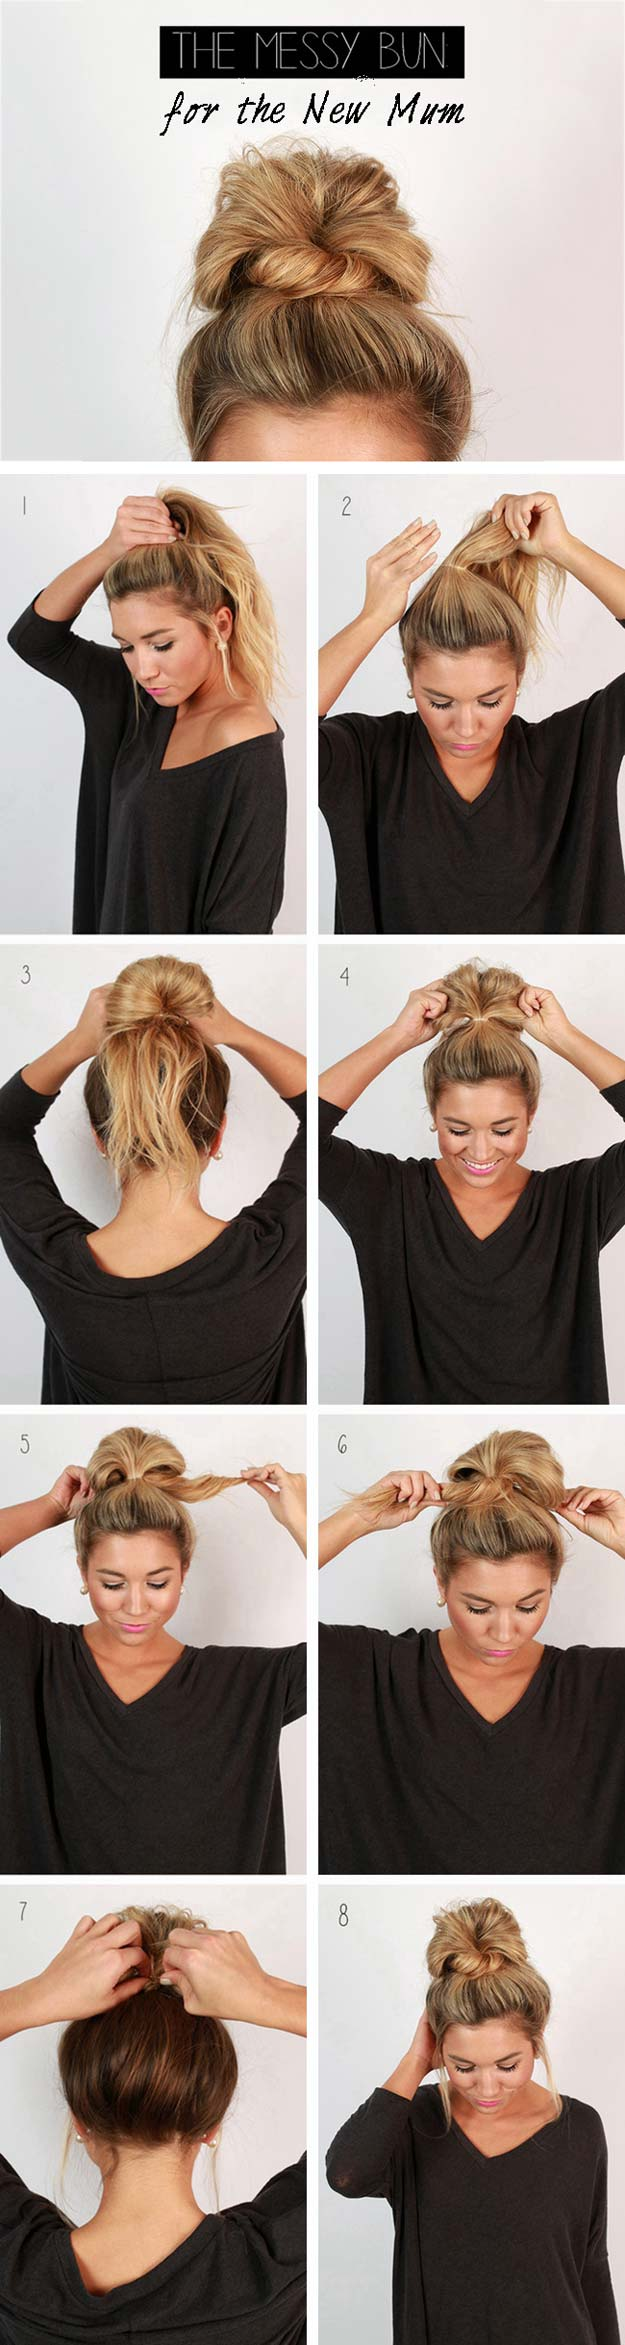 41 diy cool easy hairstyles that real people can actually. Black Bedroom Furniture Sets. Home Design Ideas